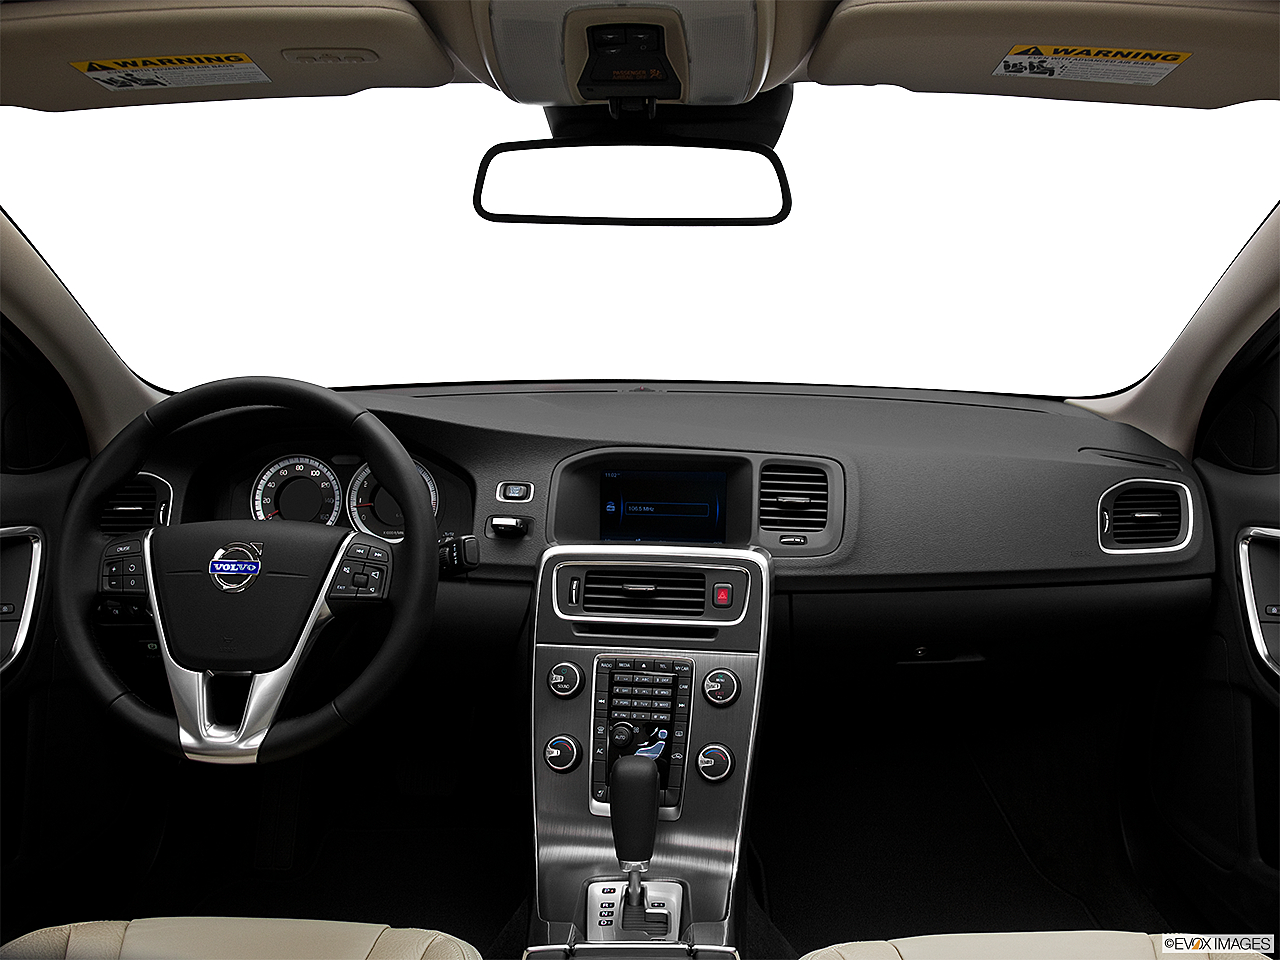 2012 Volvo S60 T5 SR, centered wide dash shot